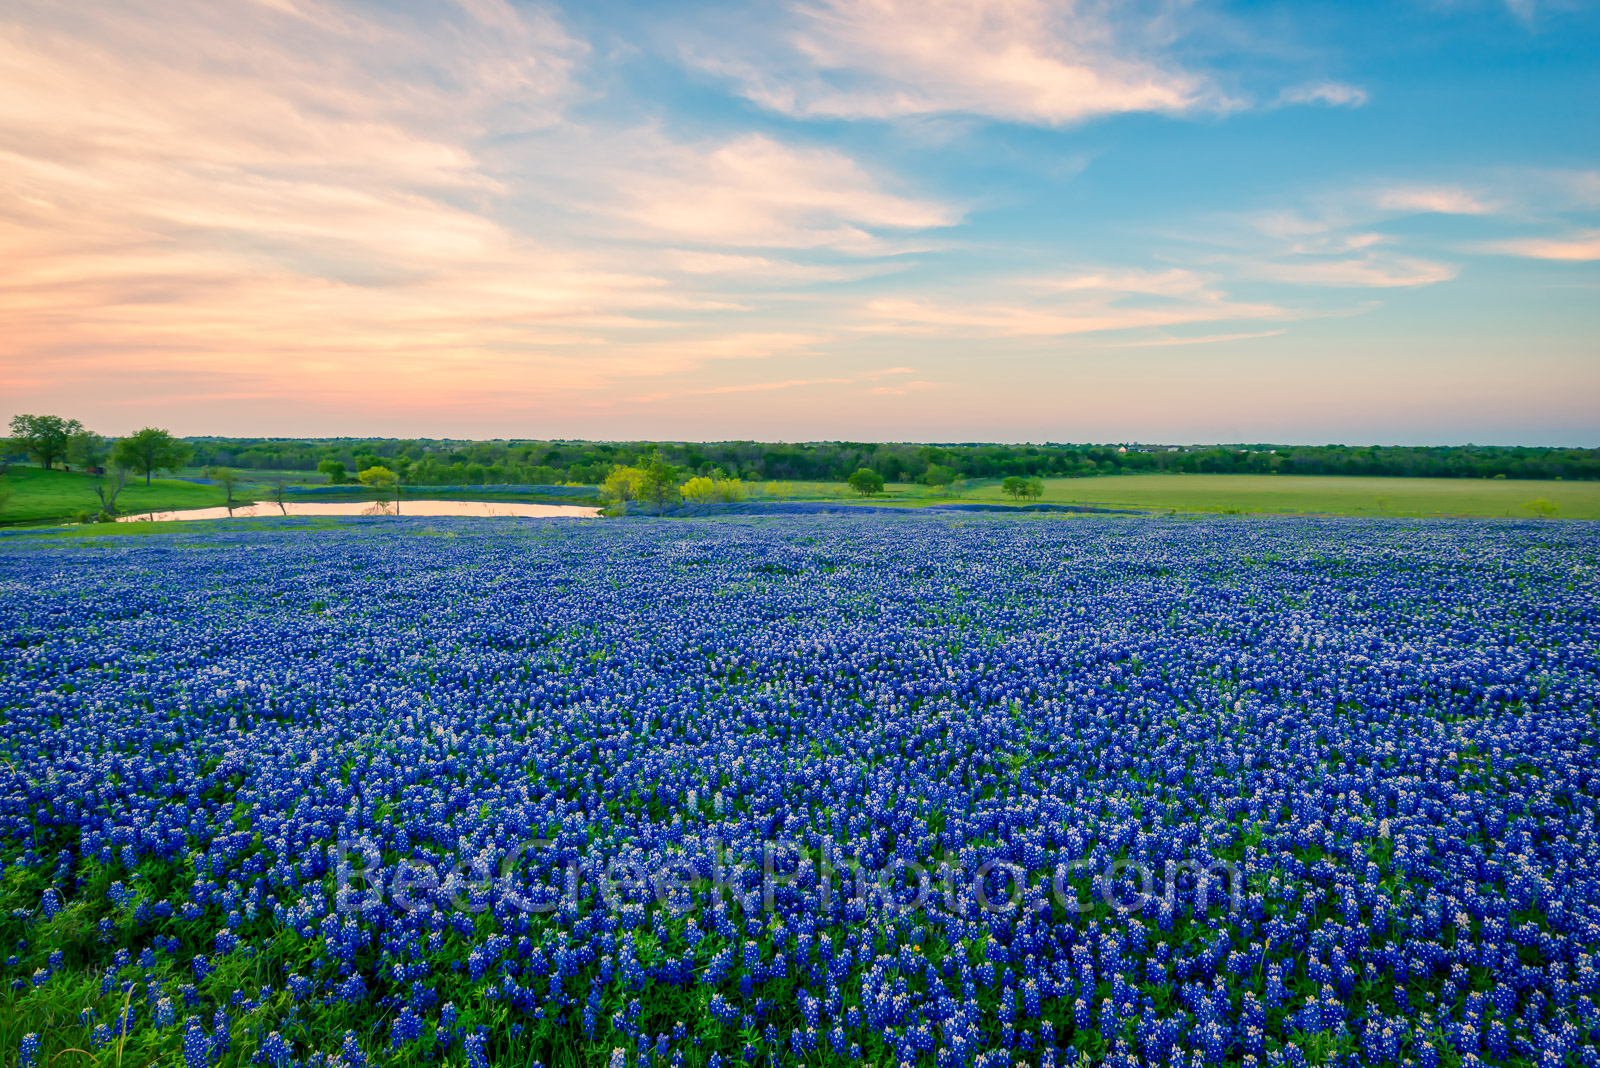 Bluebonnet images, pictures of bluebonnets, Texas Bluebonnets, bluebonnet sunset, bluebonnets, sunset,  texas, fileld of bluebonnets,image of bluebonnets, pictures of bluebonnets,  photos of texas, ra